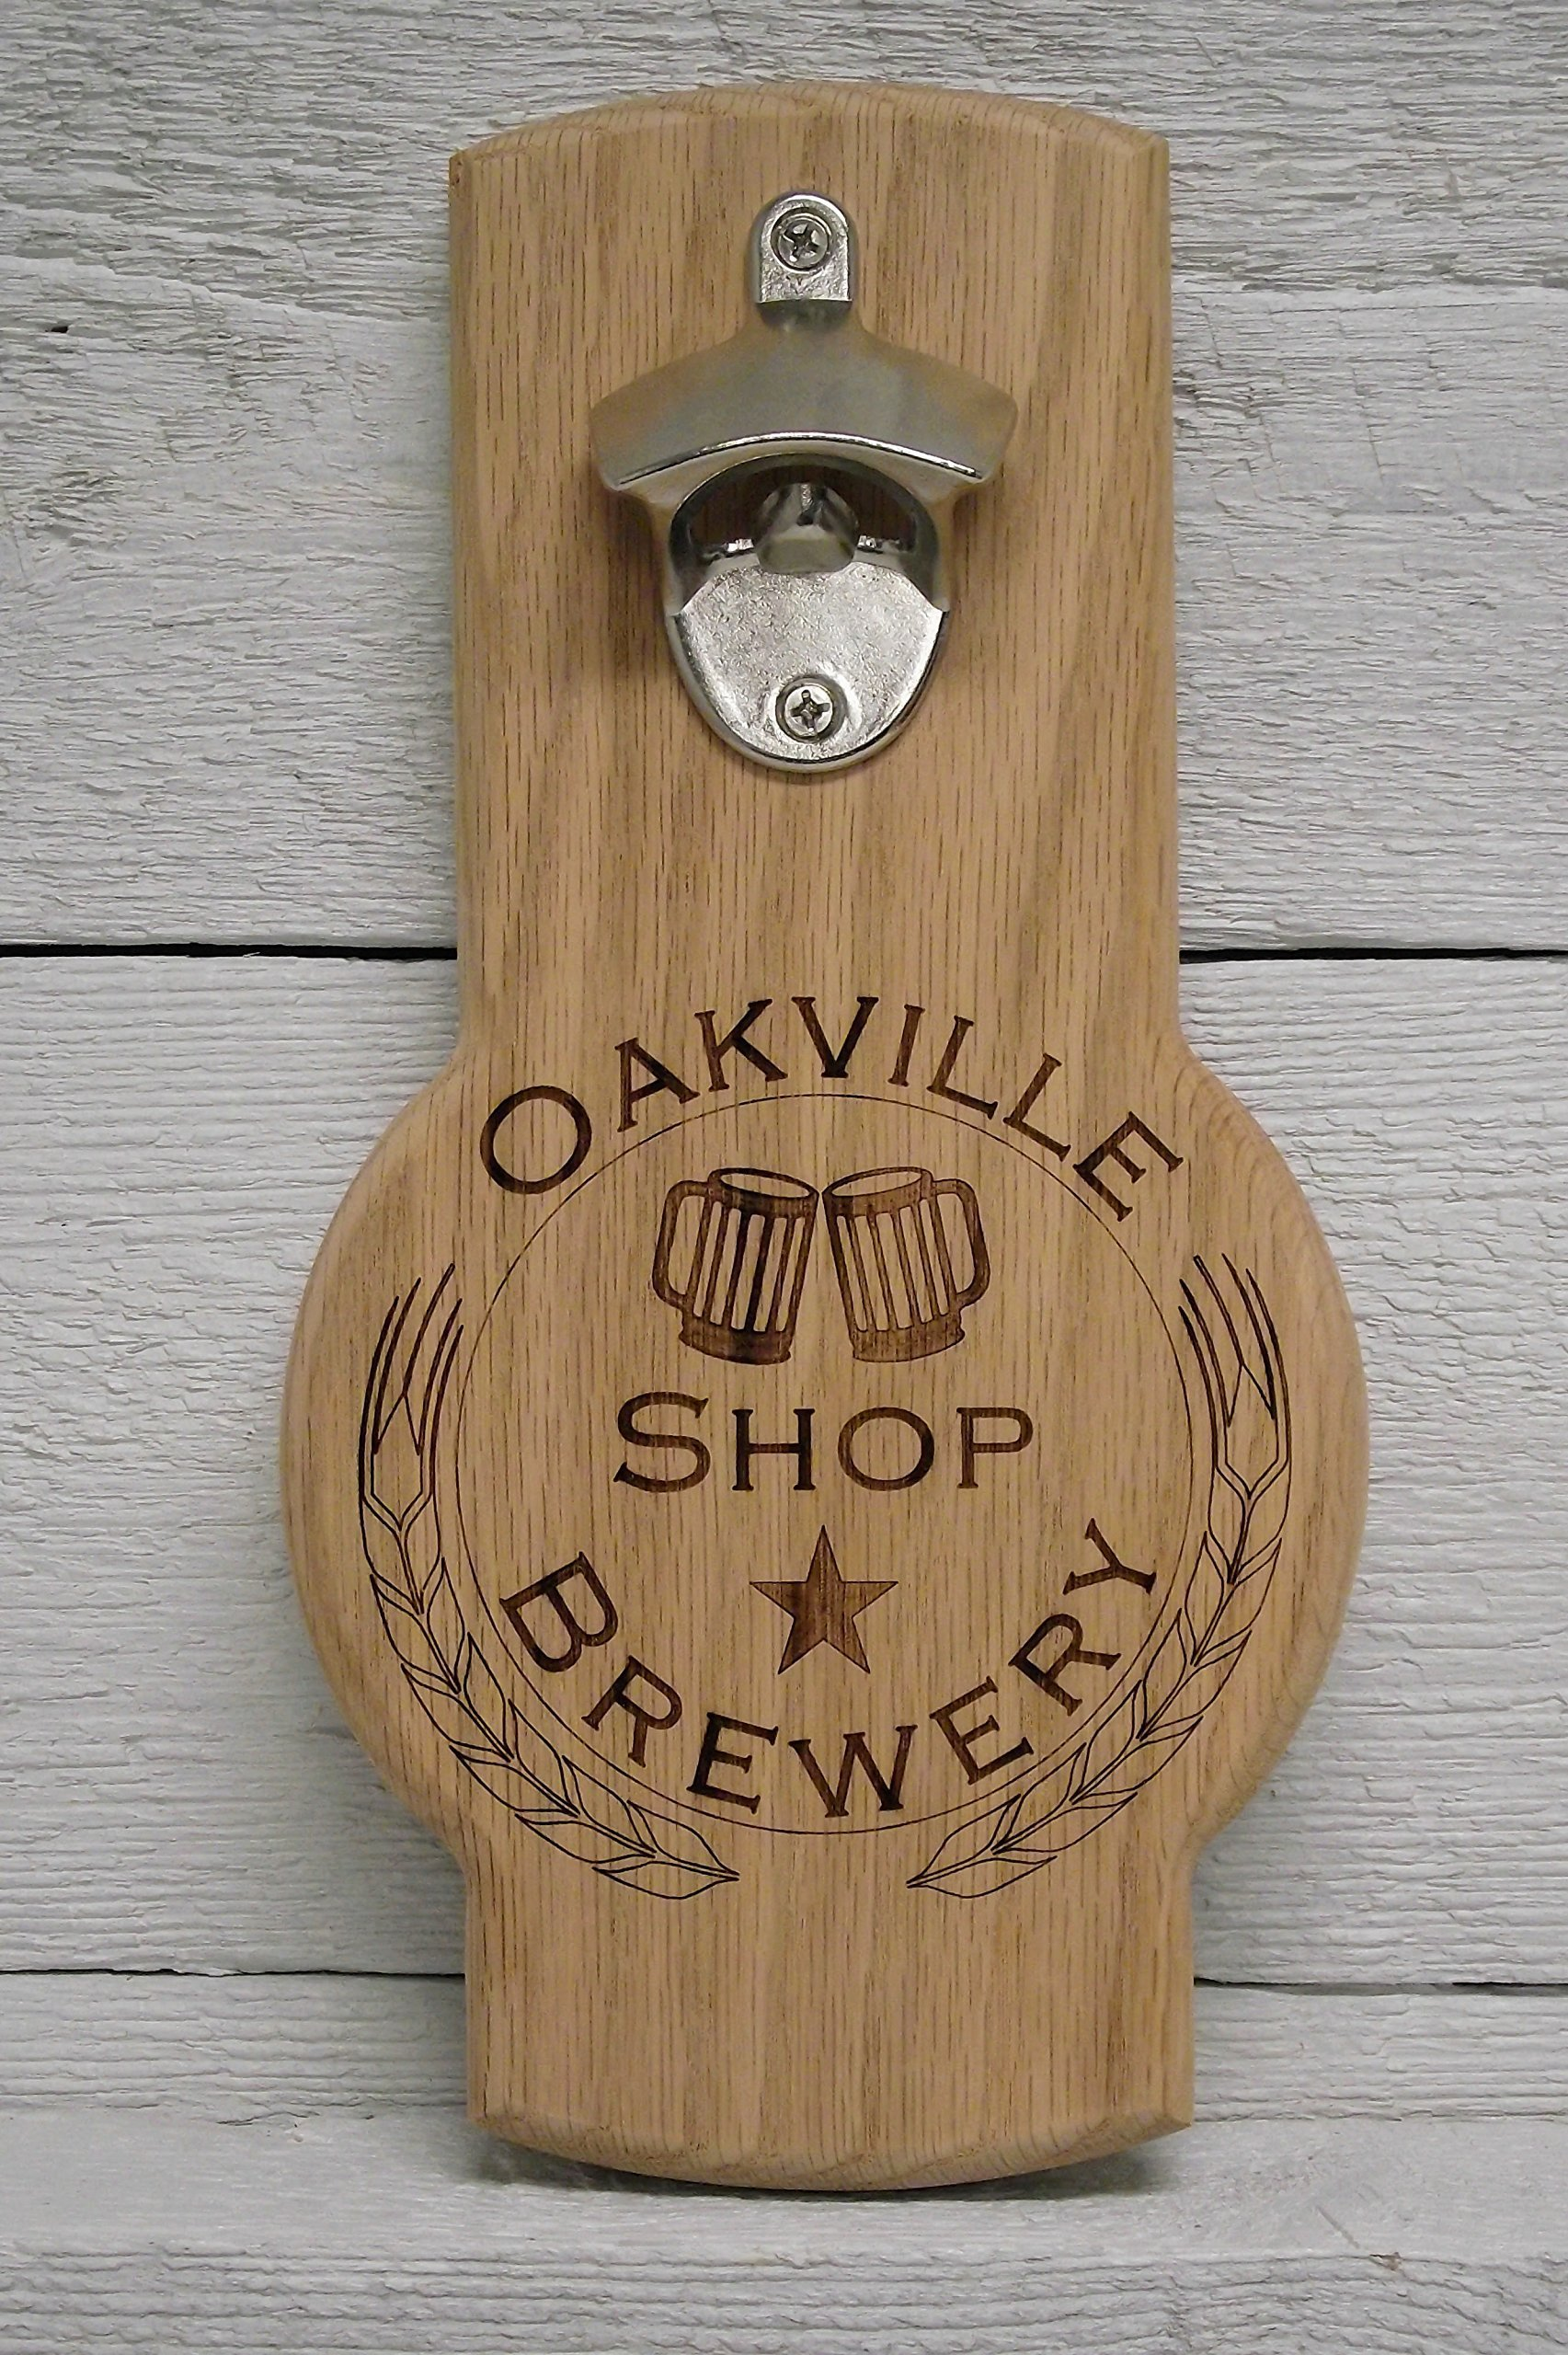 Wall mounted beer bottle opener personalized custom engraved logo. Great gift, for home bar, restaurant, brewery.